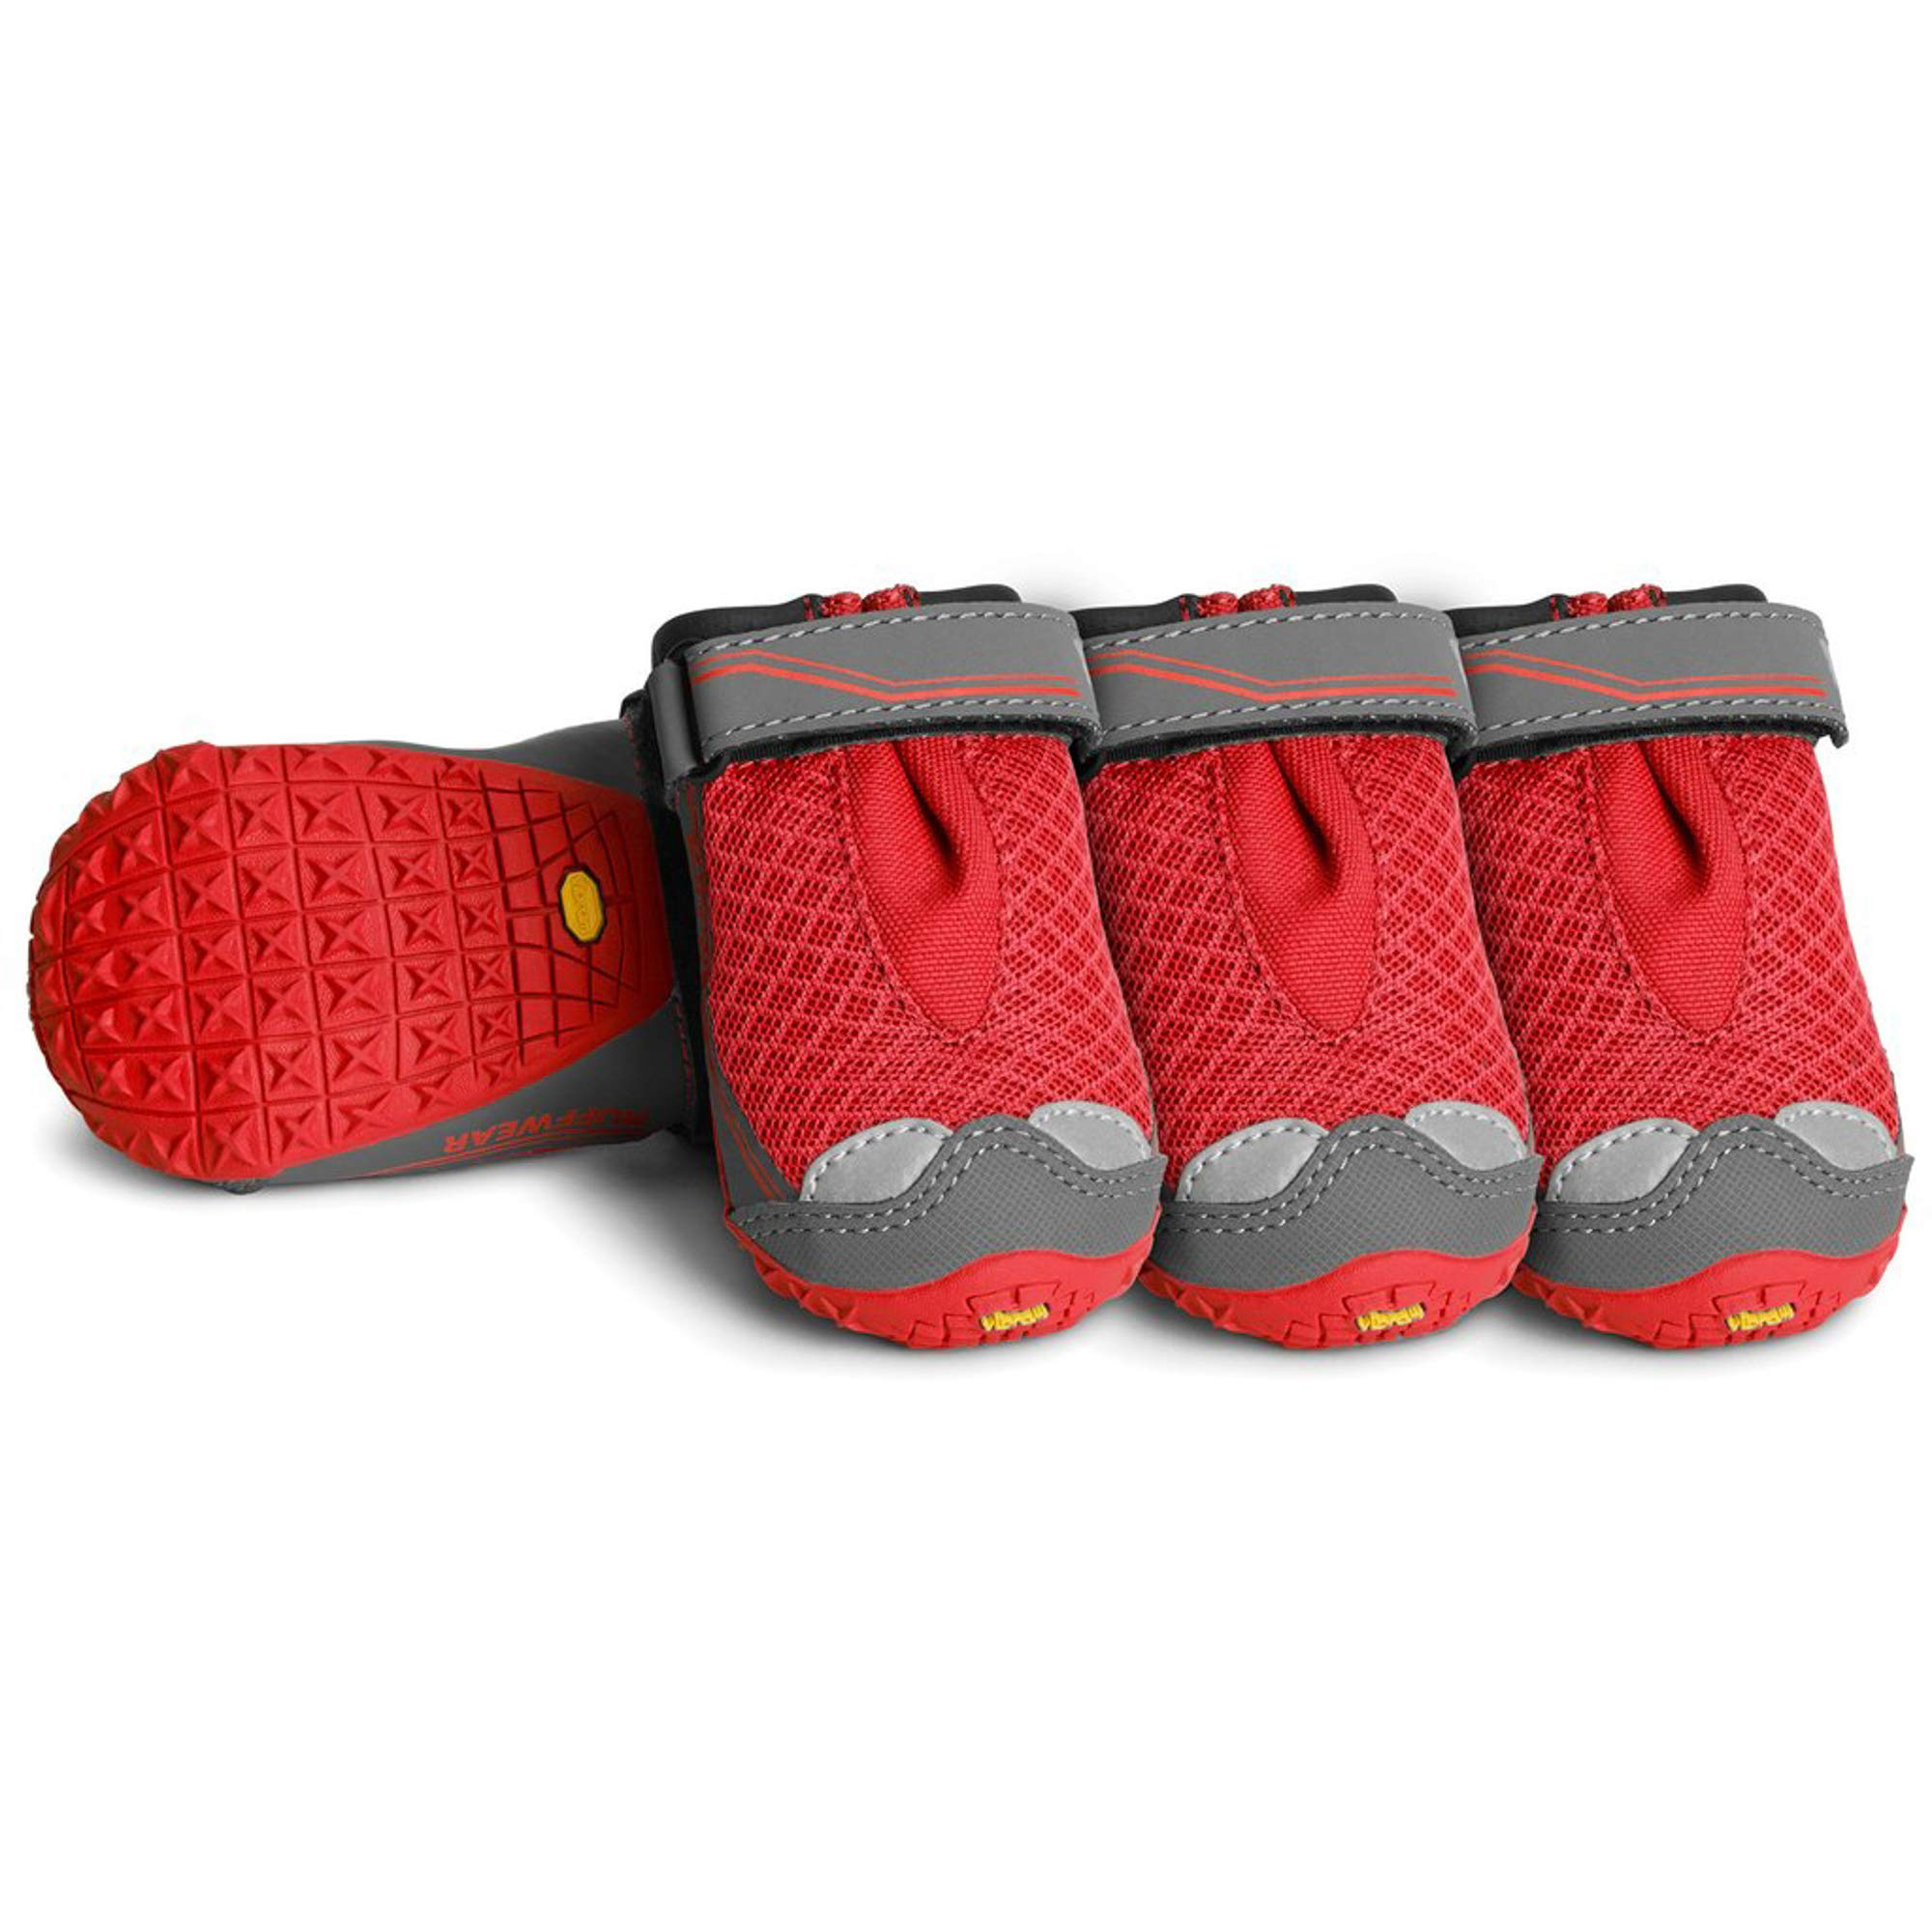 RUFFWEAR - Grip Trex, Red Currant, 2.25 in (4 Boots) by RUFFWEAR (Image #1)